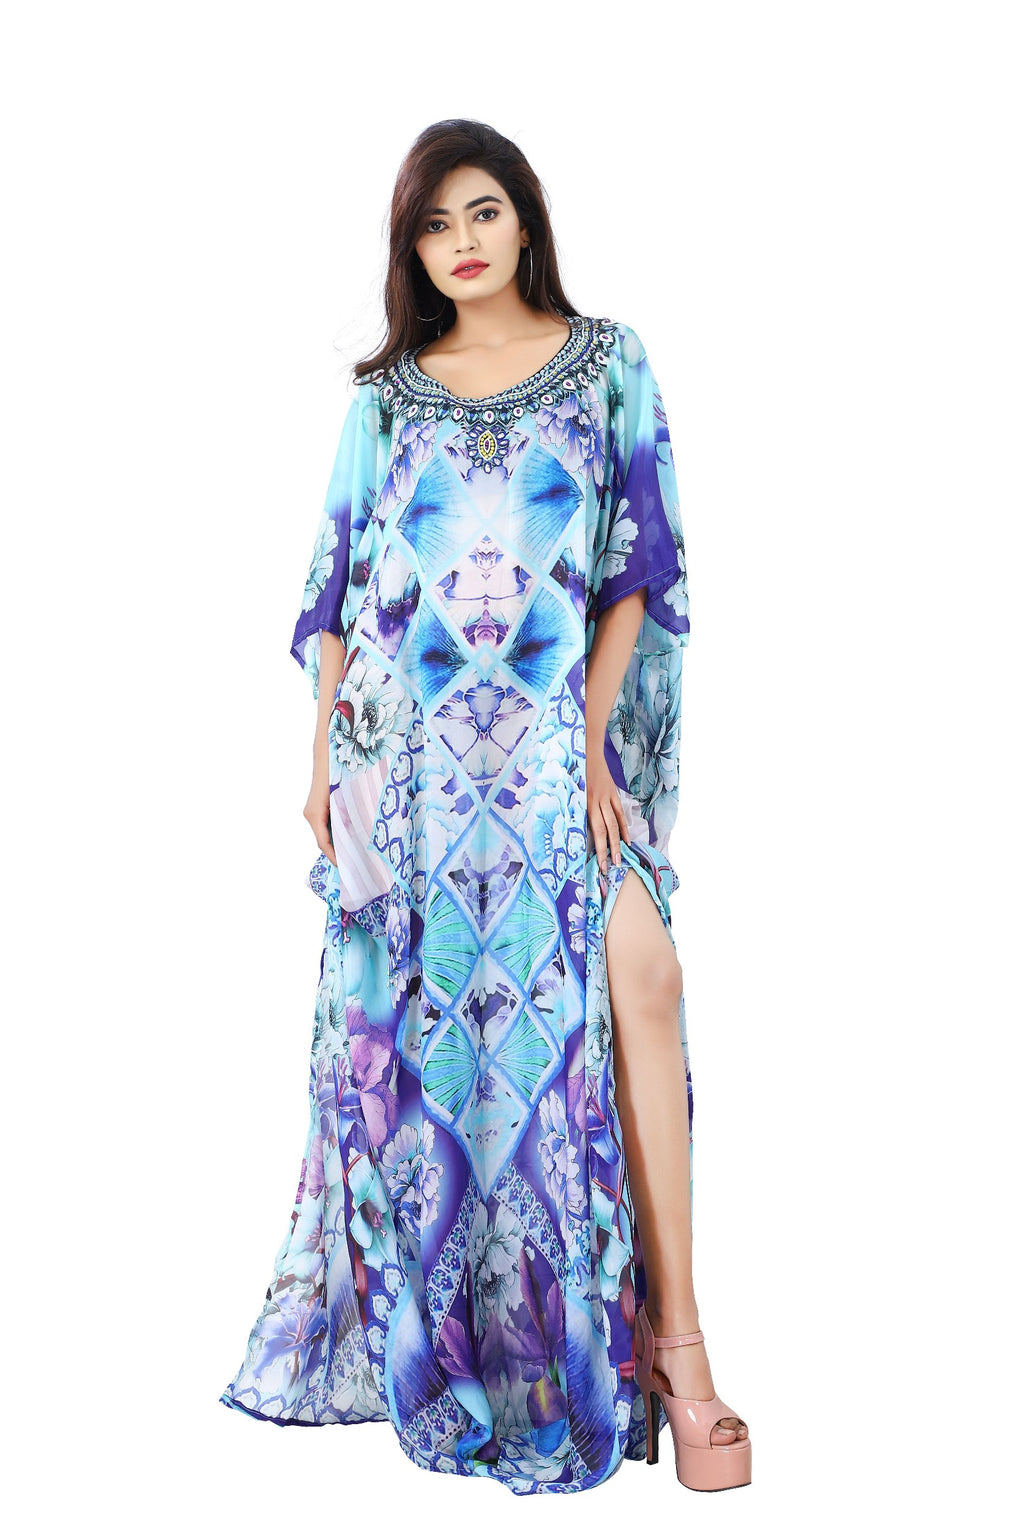 Pungent Blue Orchid Flowers printed Silk Kaftan pooled up with sultry blue lilies - Silk kaftan